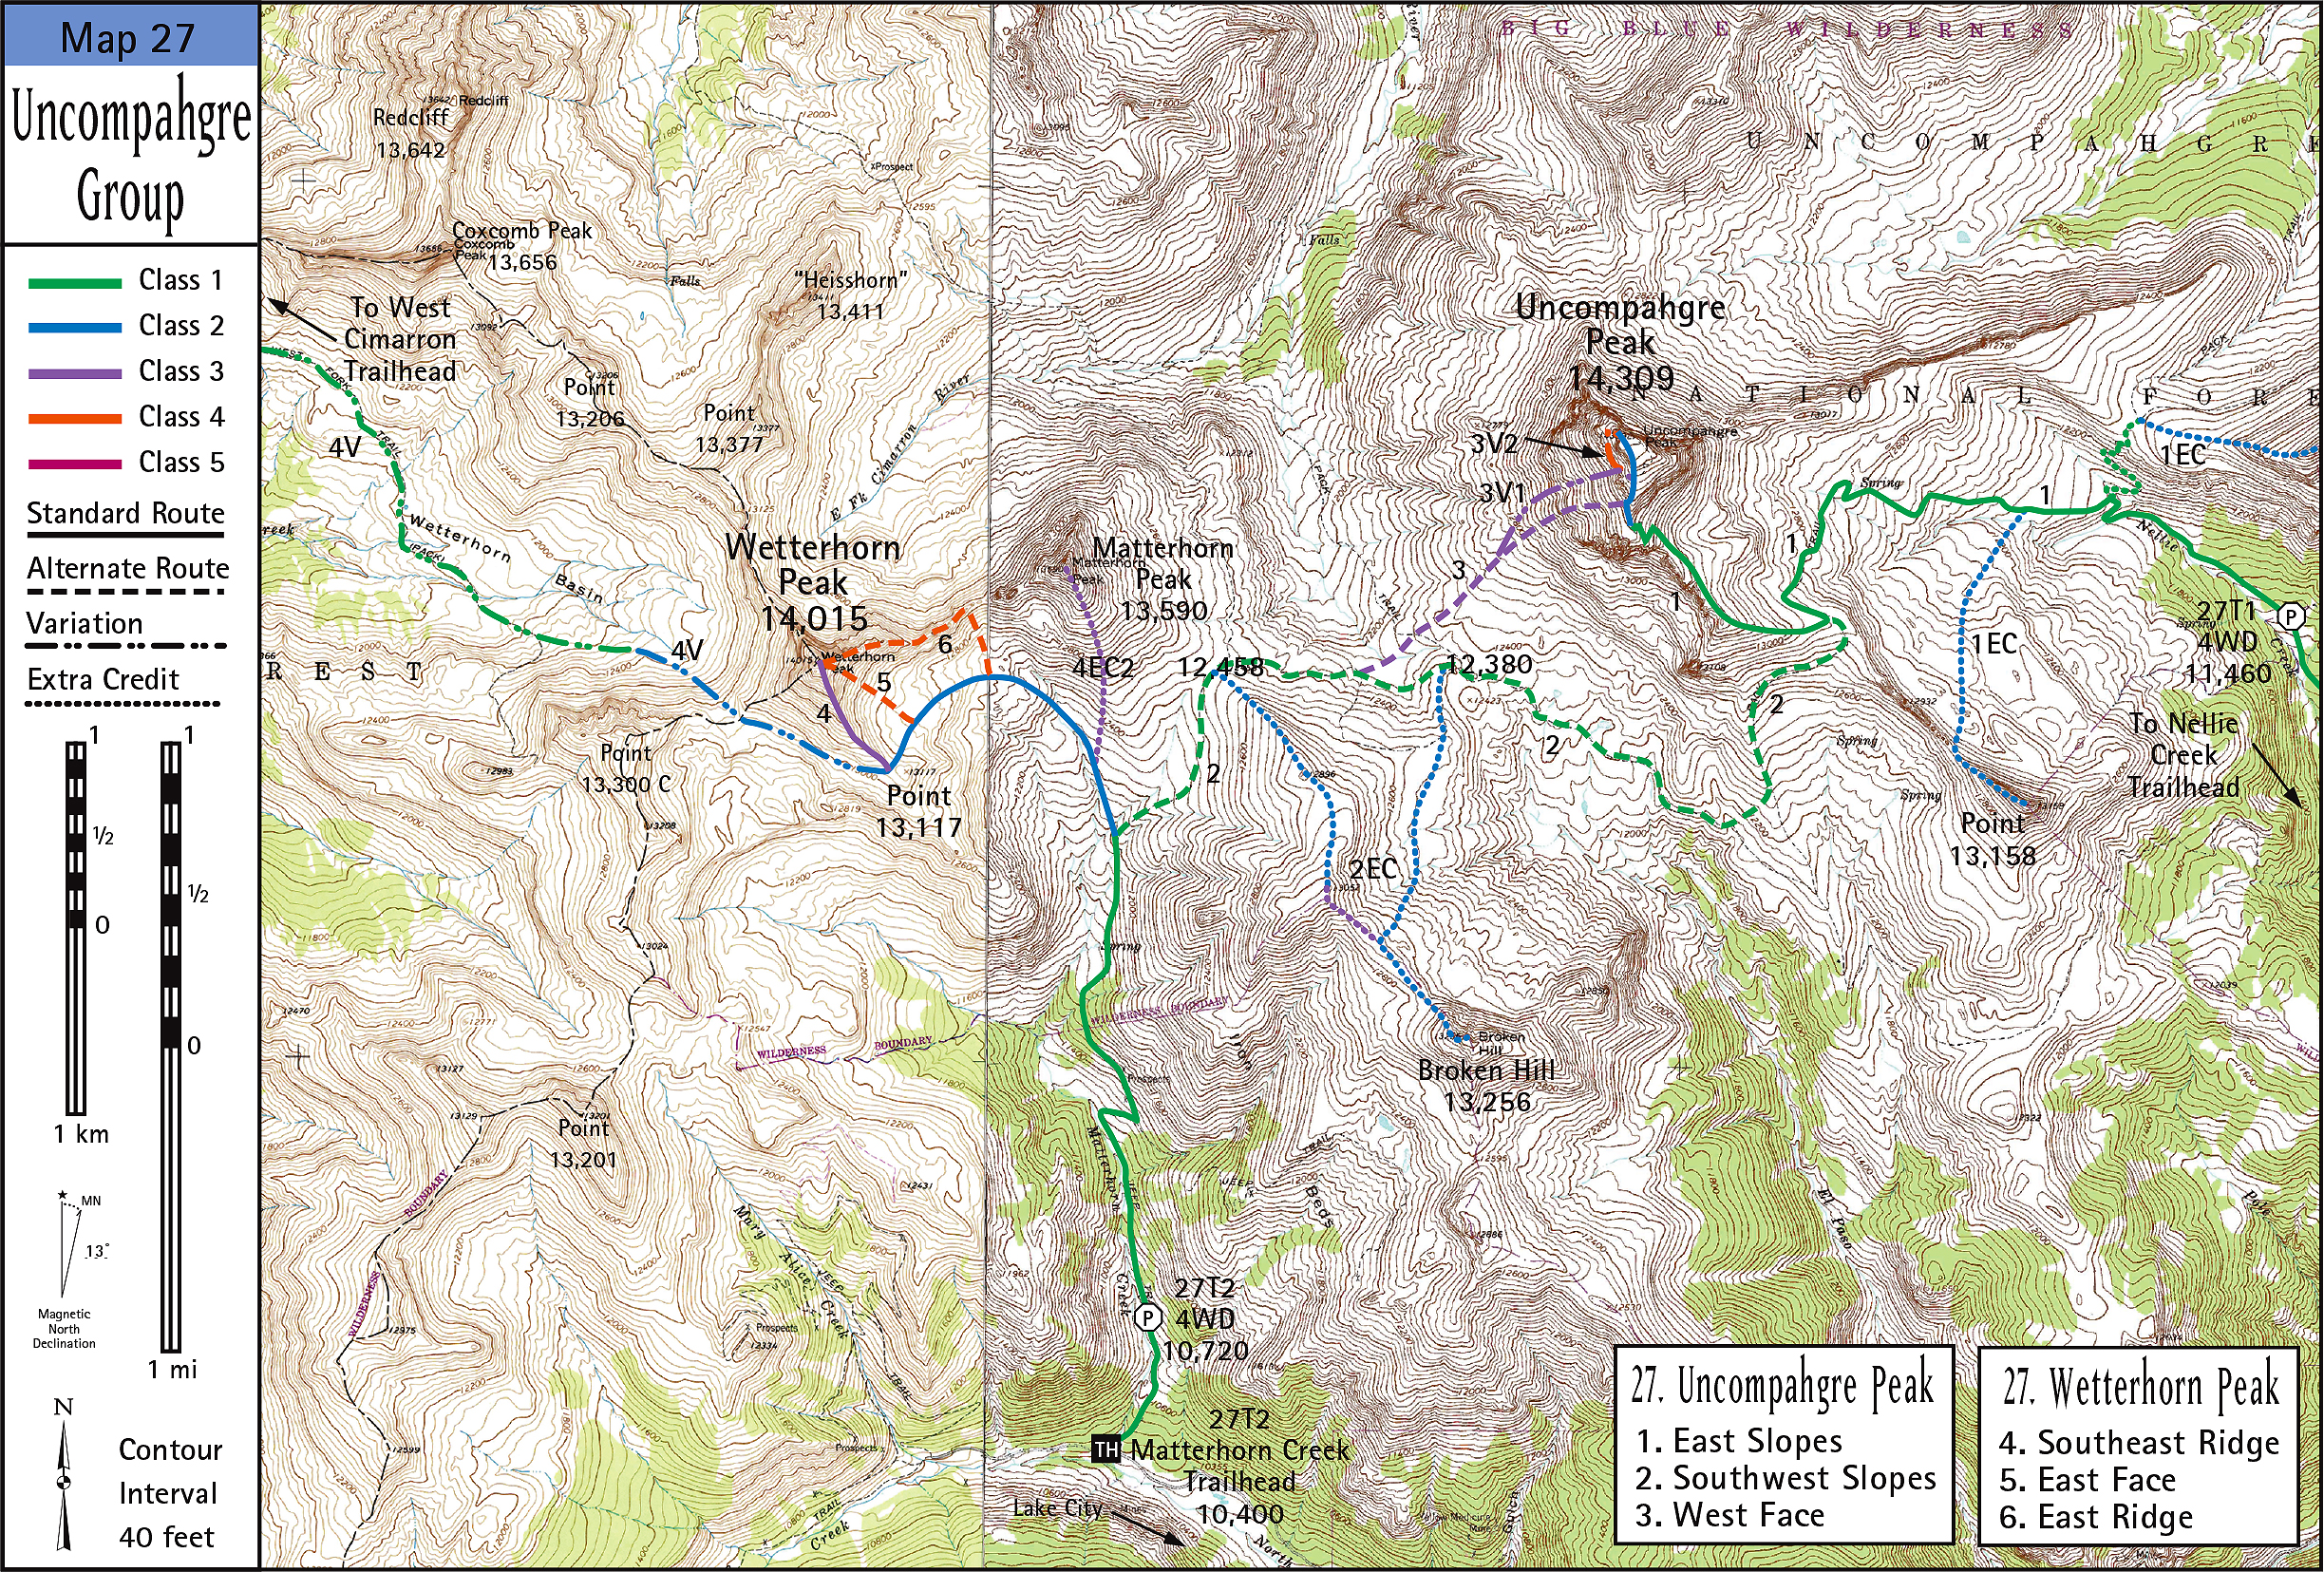 Uncompahgre Group Map